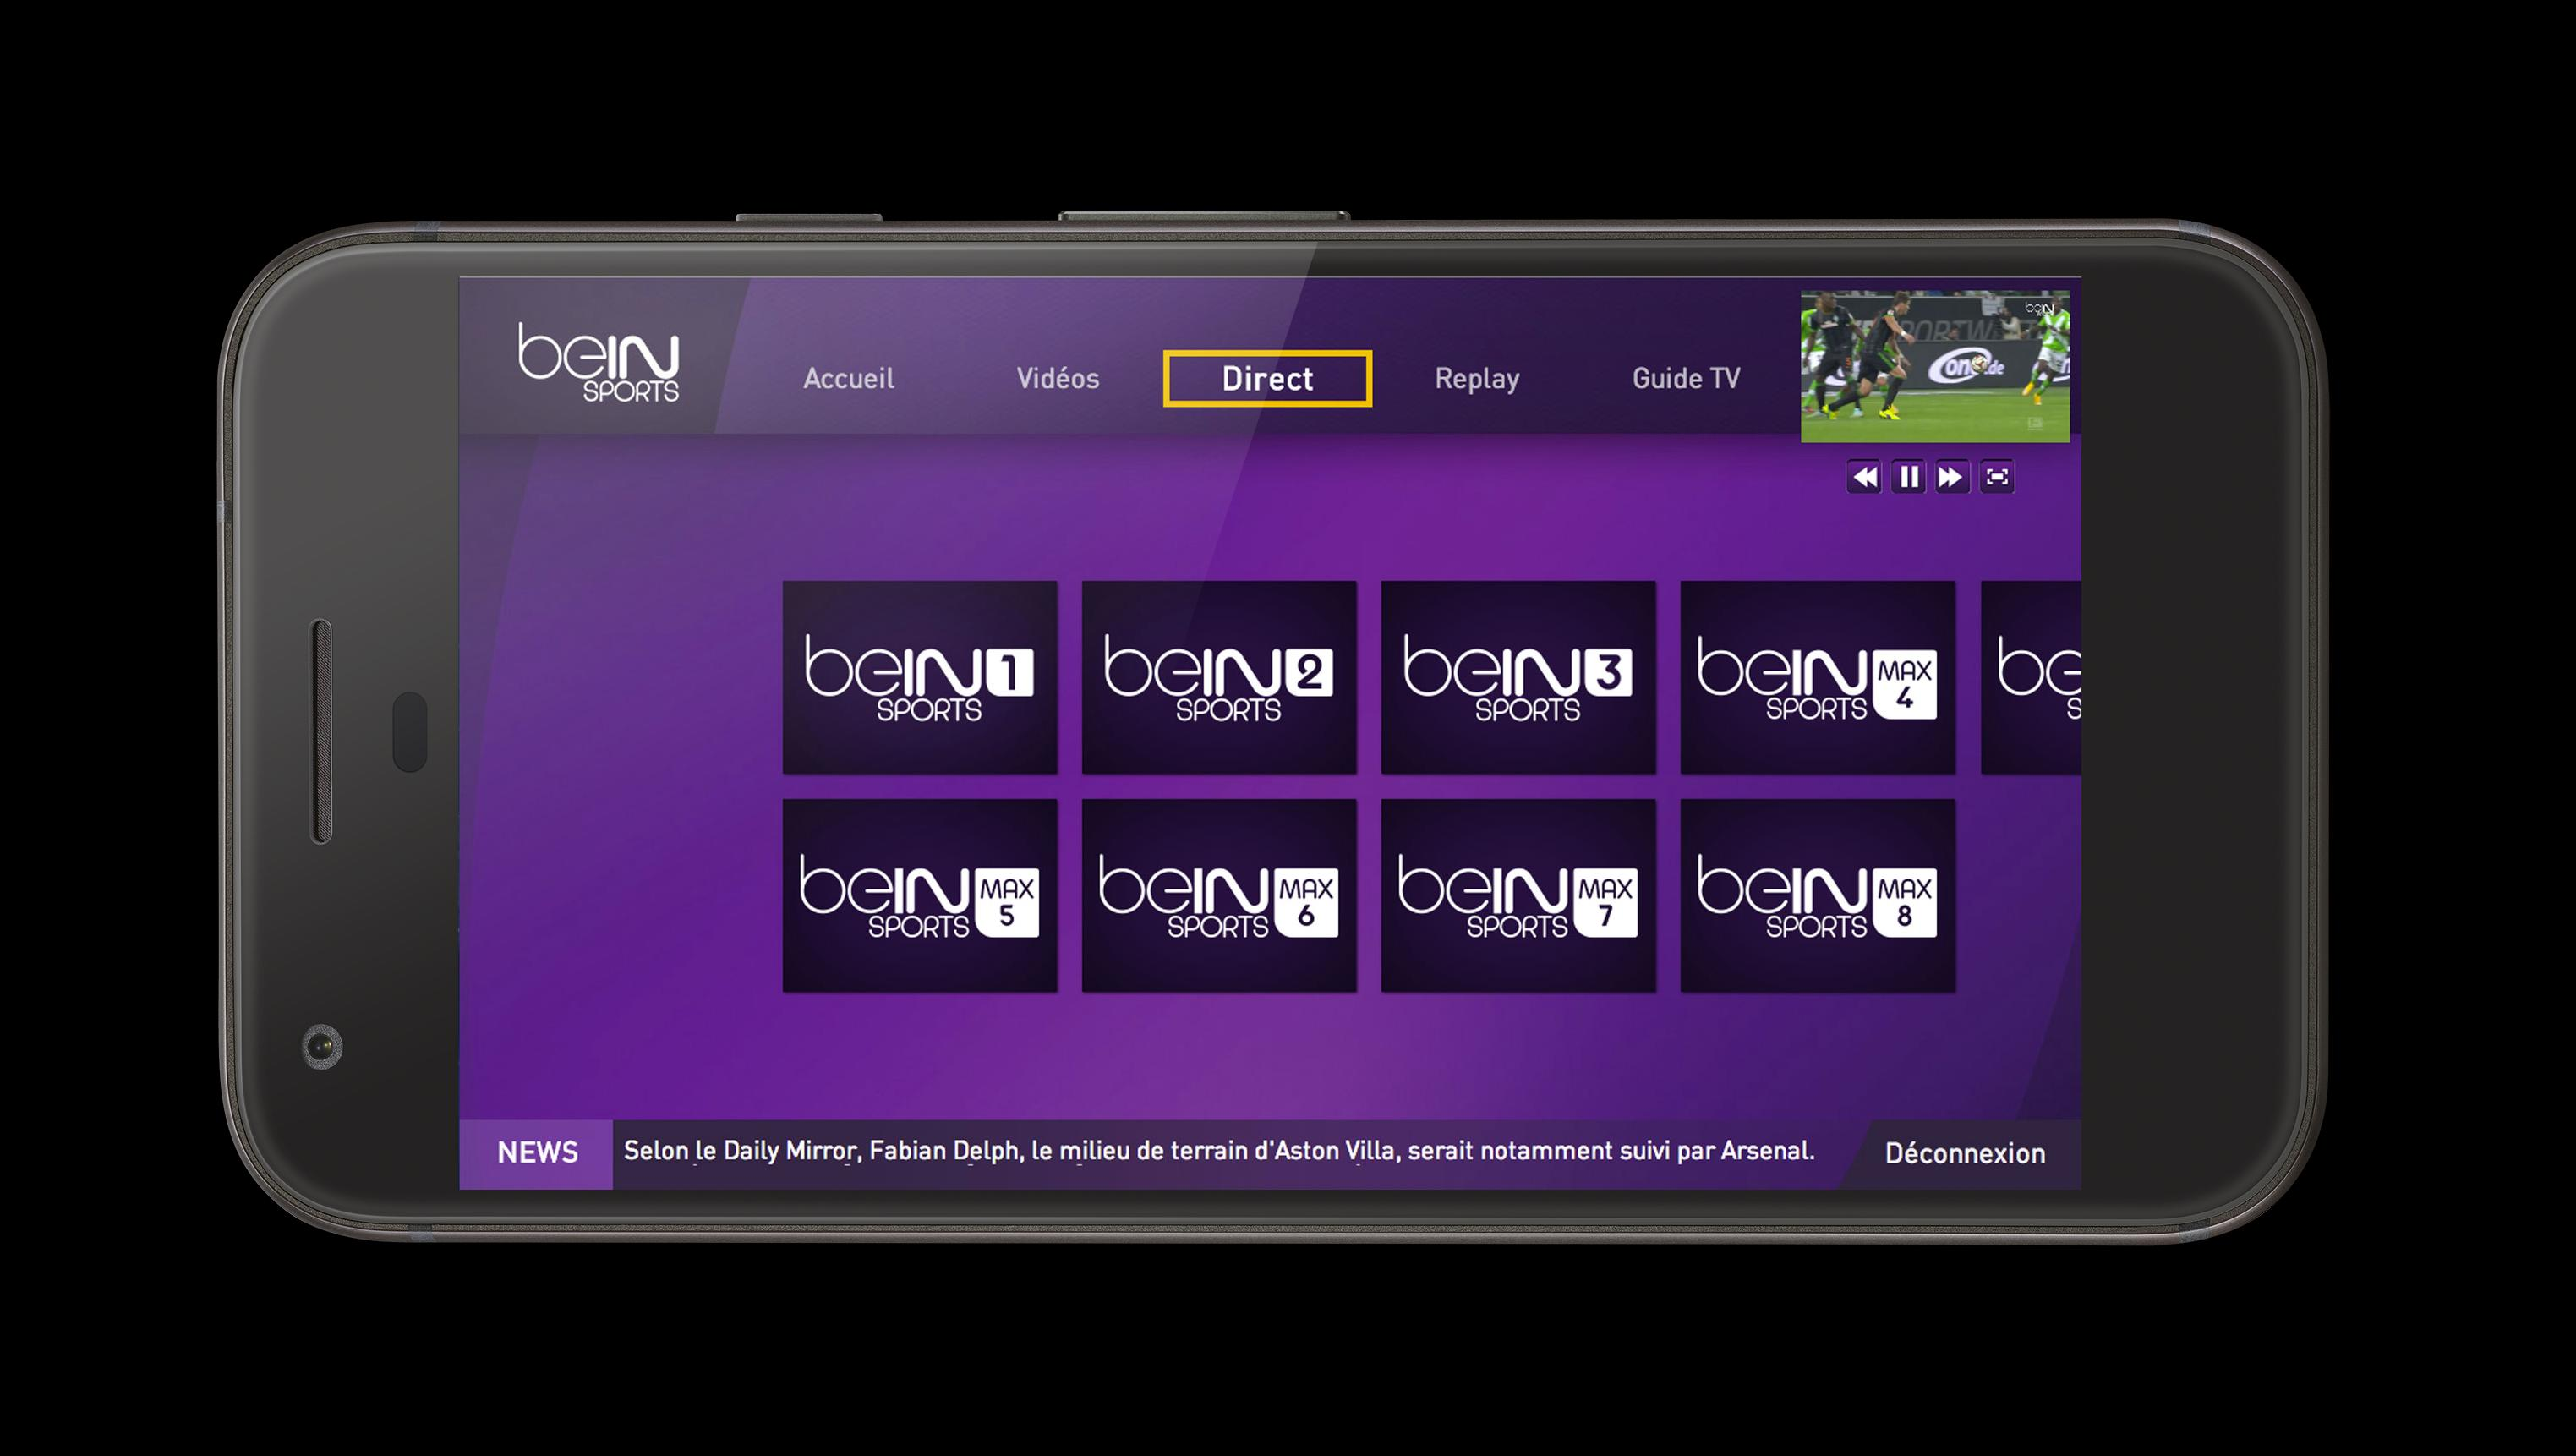 Bein Sports Live Tv For Android Apk Download